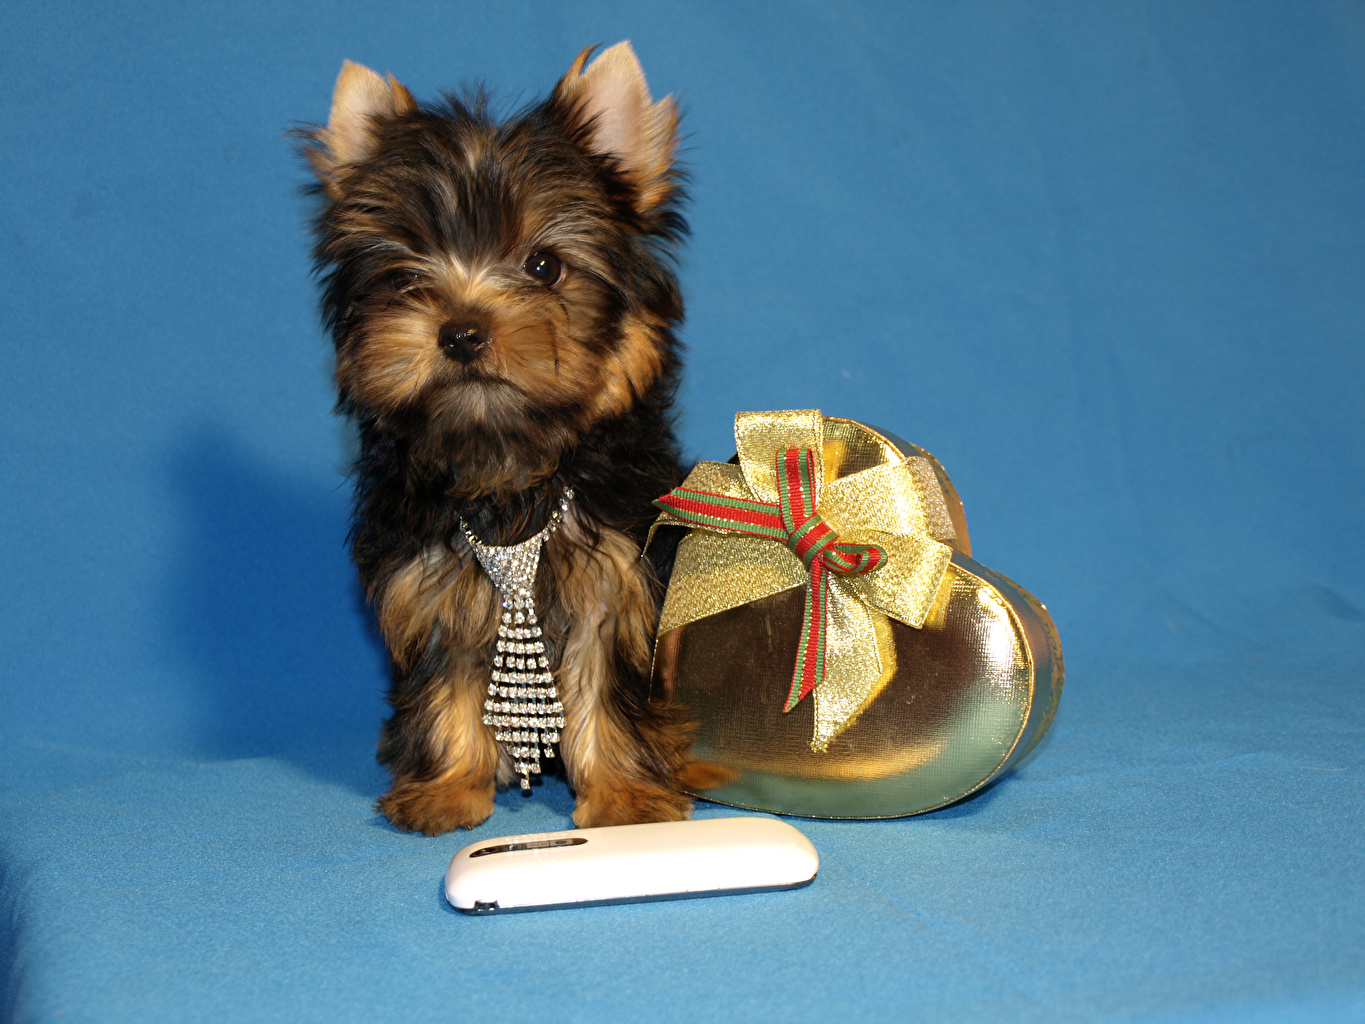 Wallpaper Puppy Yorkshire terrier Dogs Heart Necktie Bowknot animal Colored background puppies dog bow knot Animals